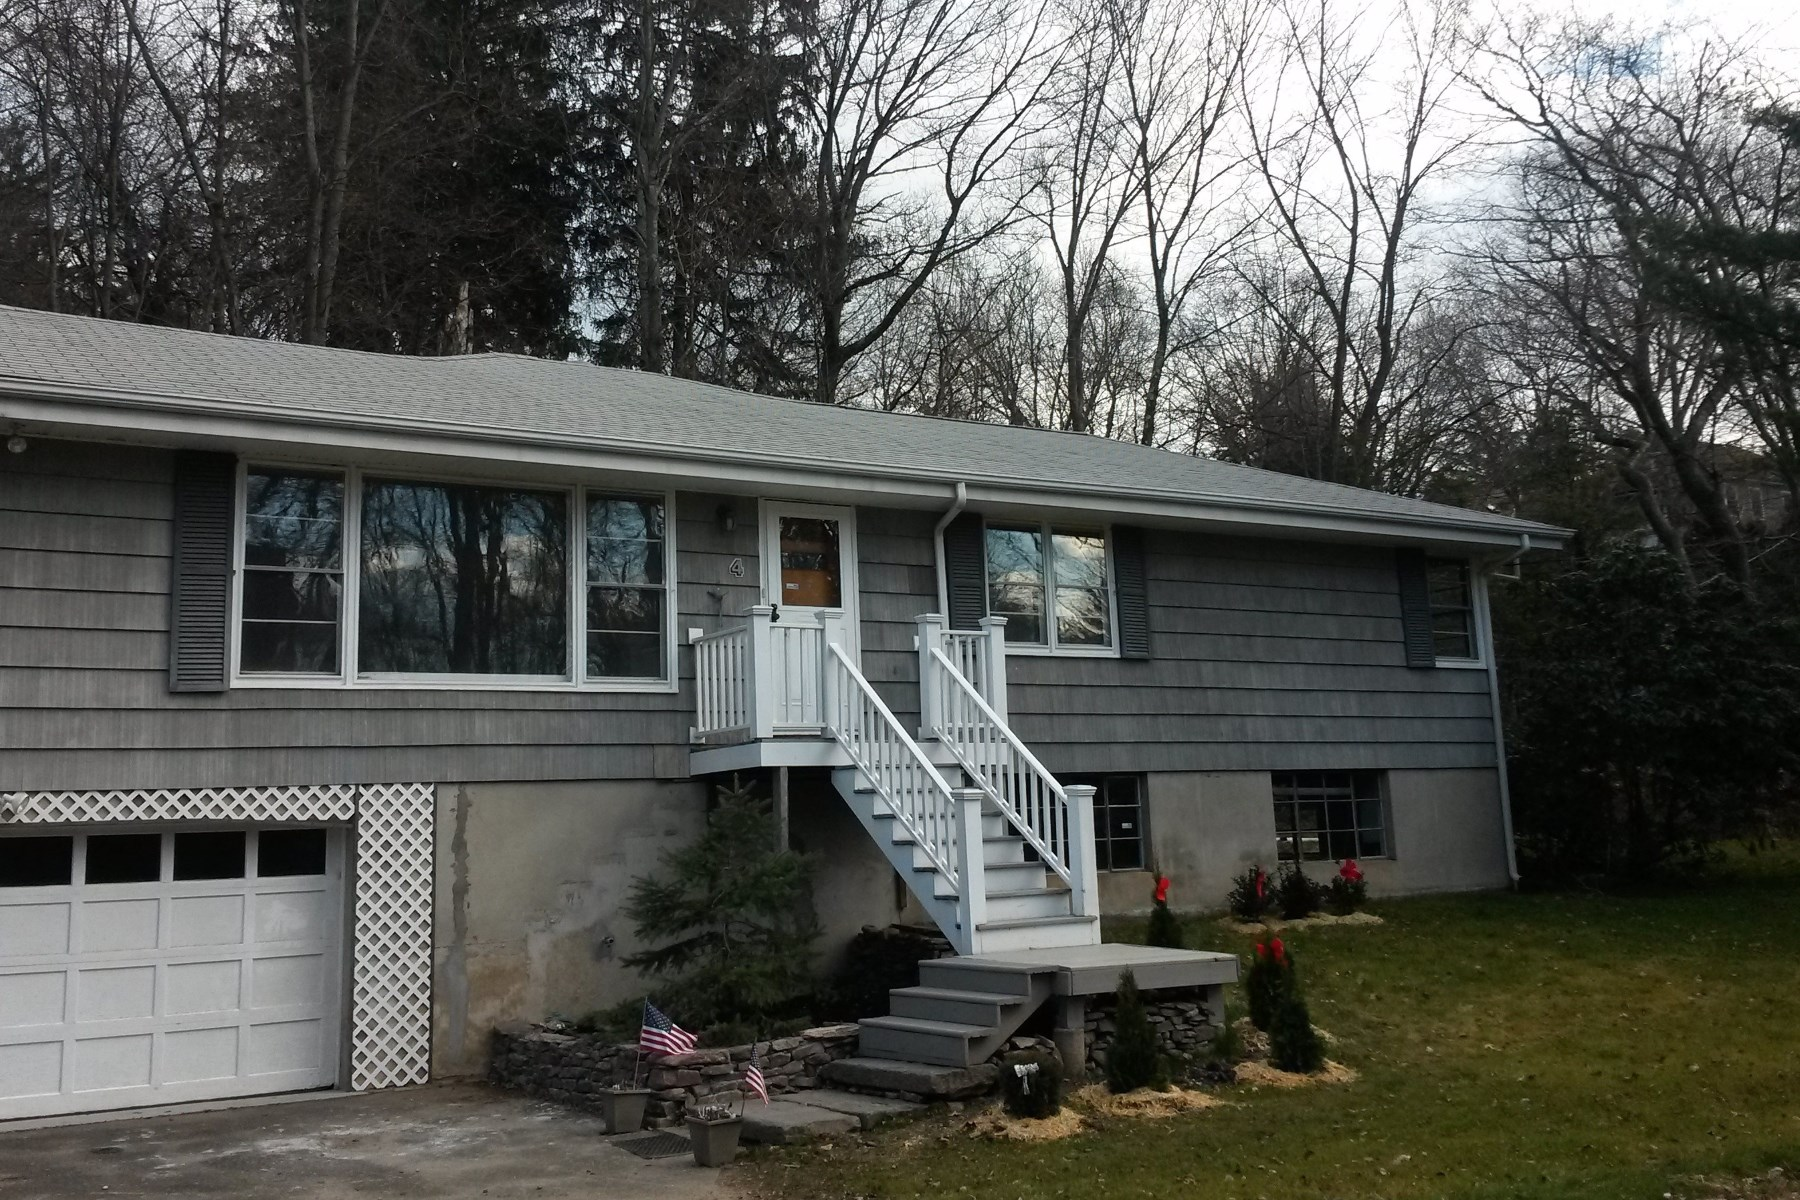 Single Family Home for Sale at 4 Apple Tree Lane, Riverside CT Riverside, Connecticut, 06878 United States